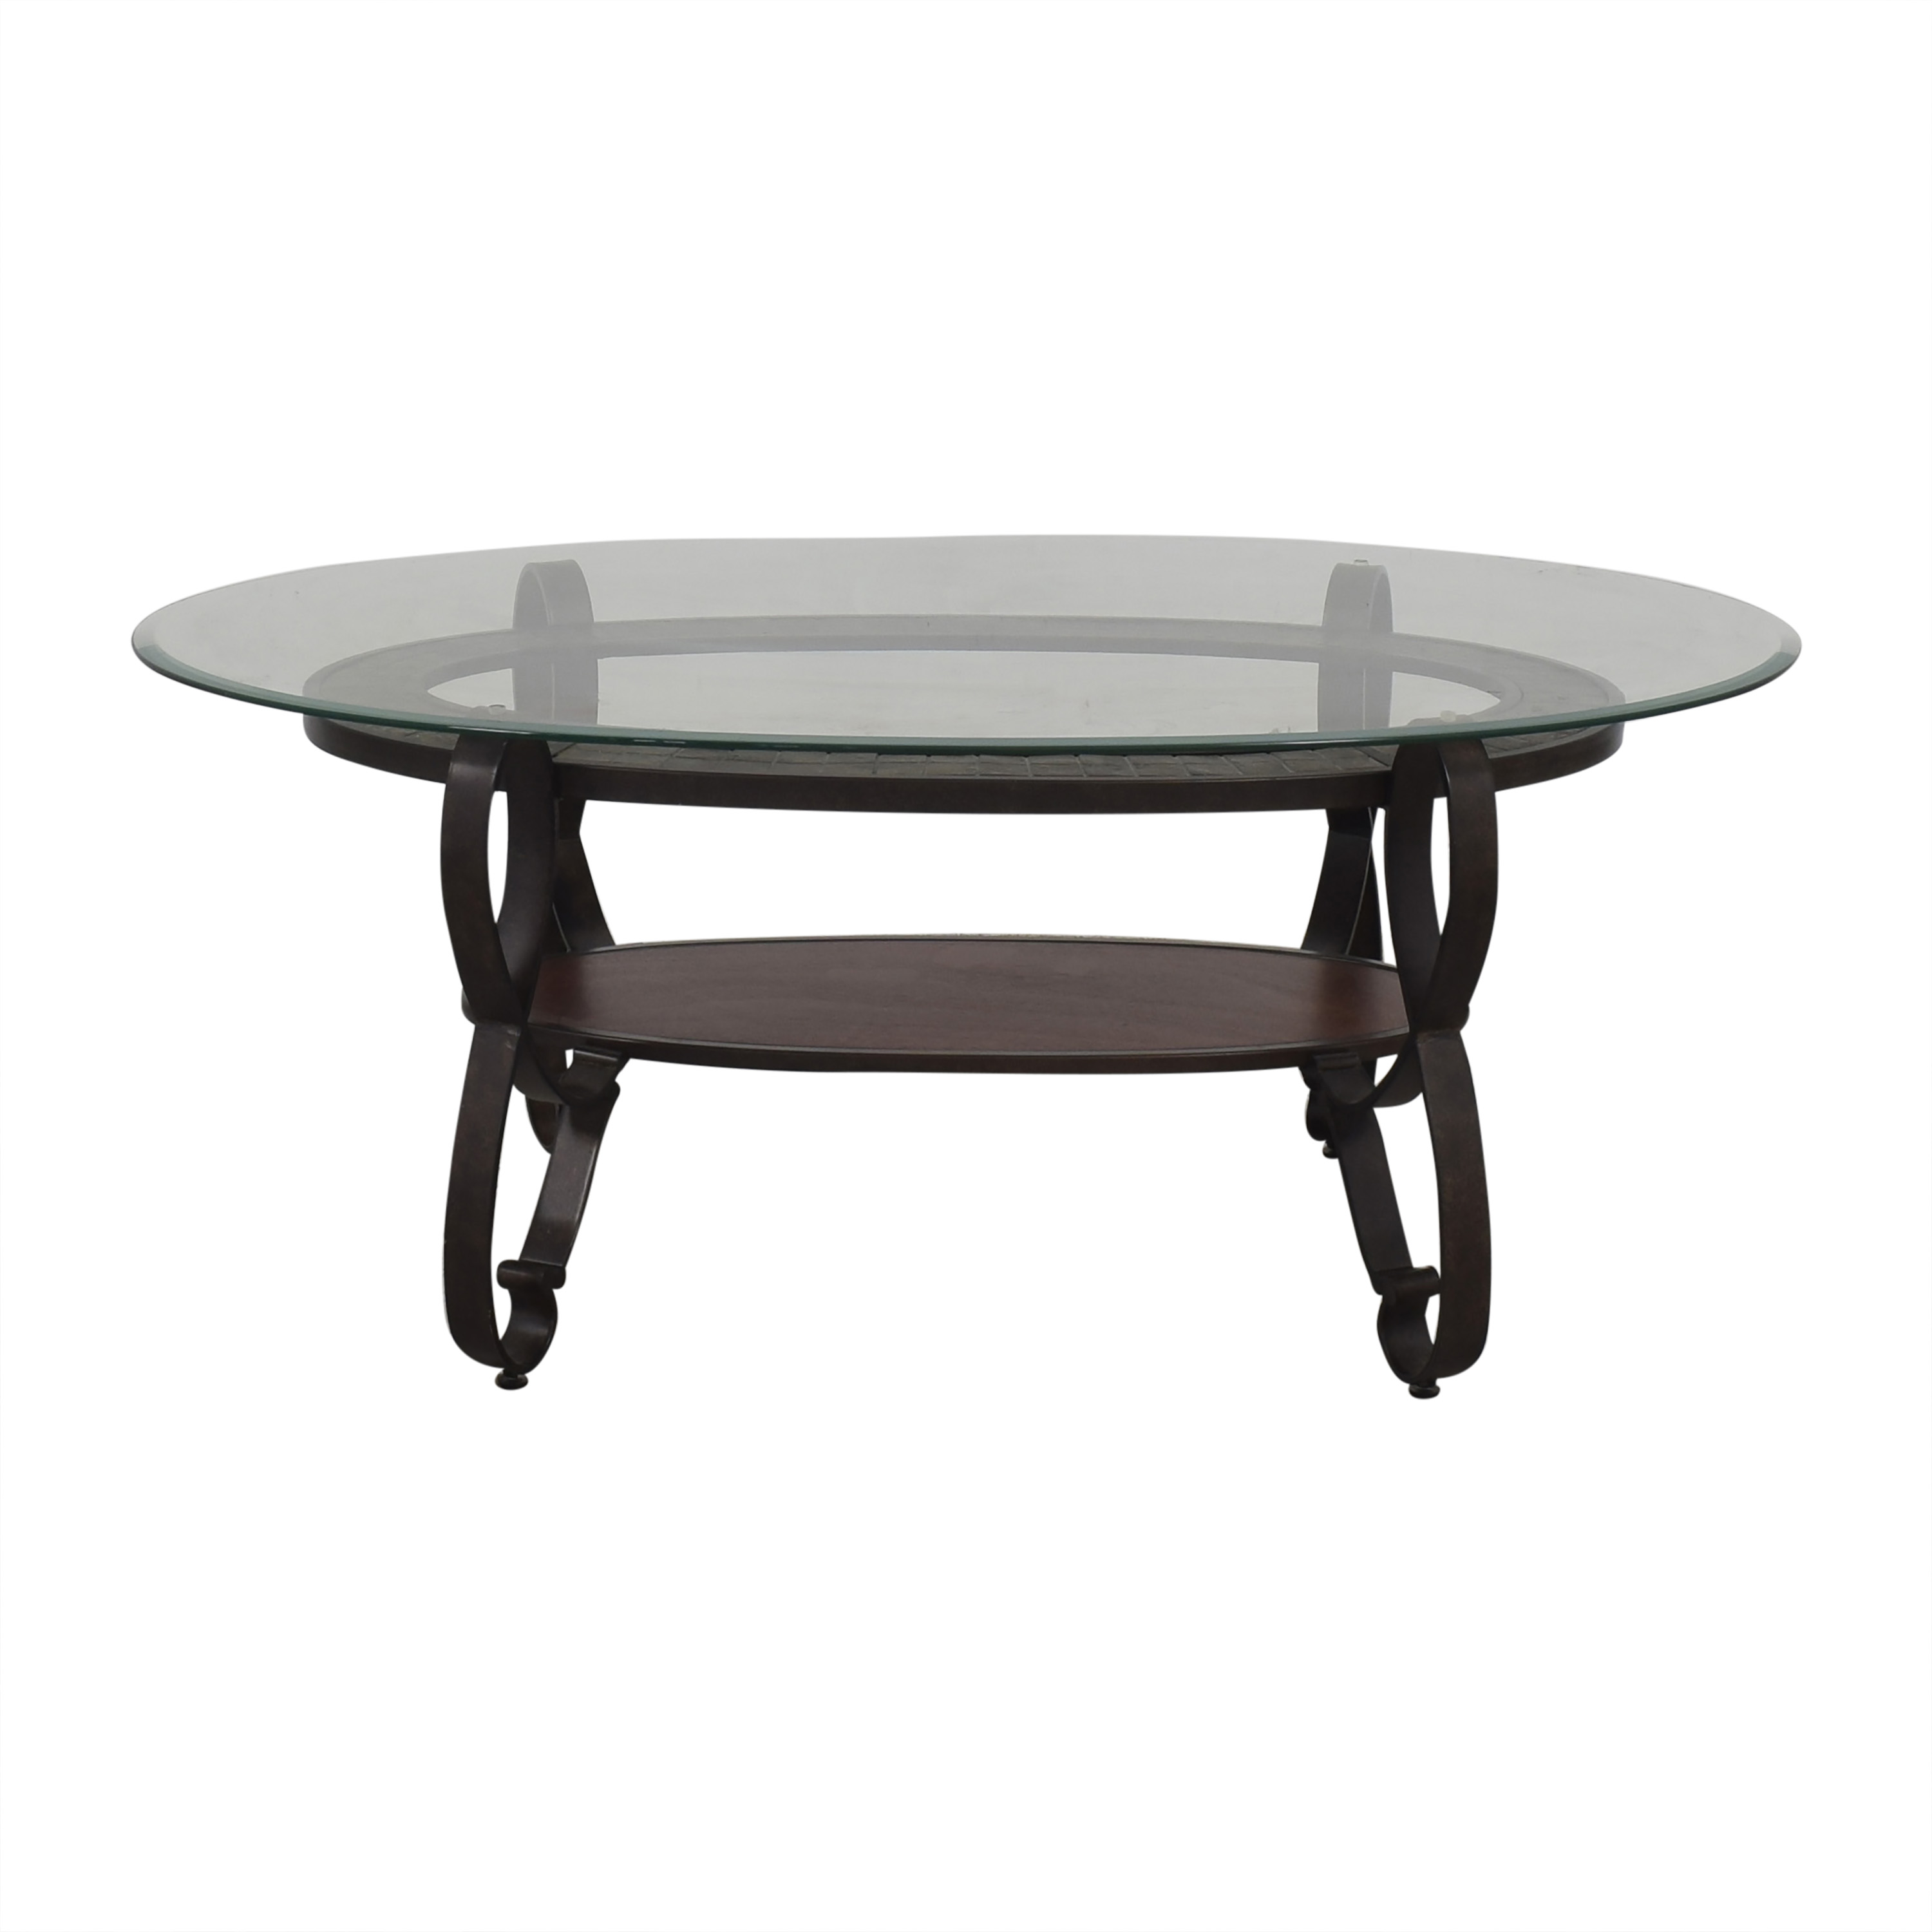 Raymour & Flanigan Raymour & Flanigan Oval Coffee Table black